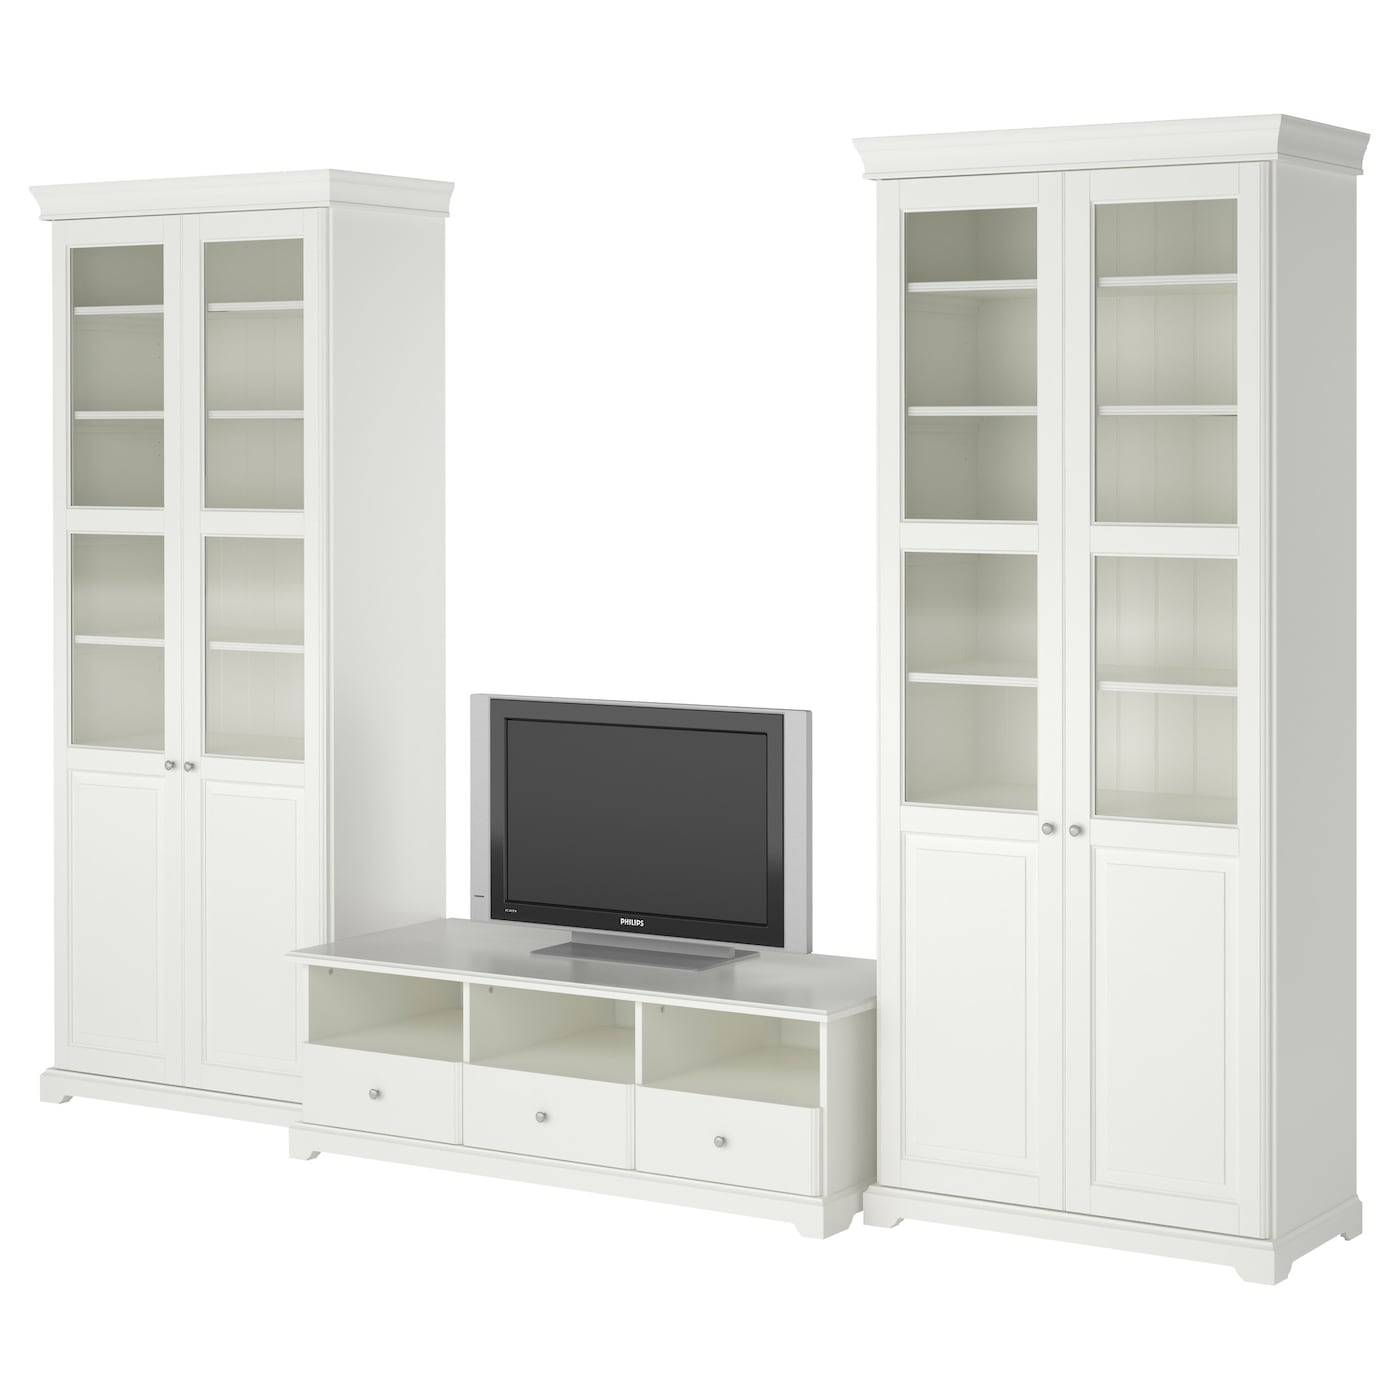 Liatorp tv storage combination white 331x214 cm ikea - Ikea tv wand ...